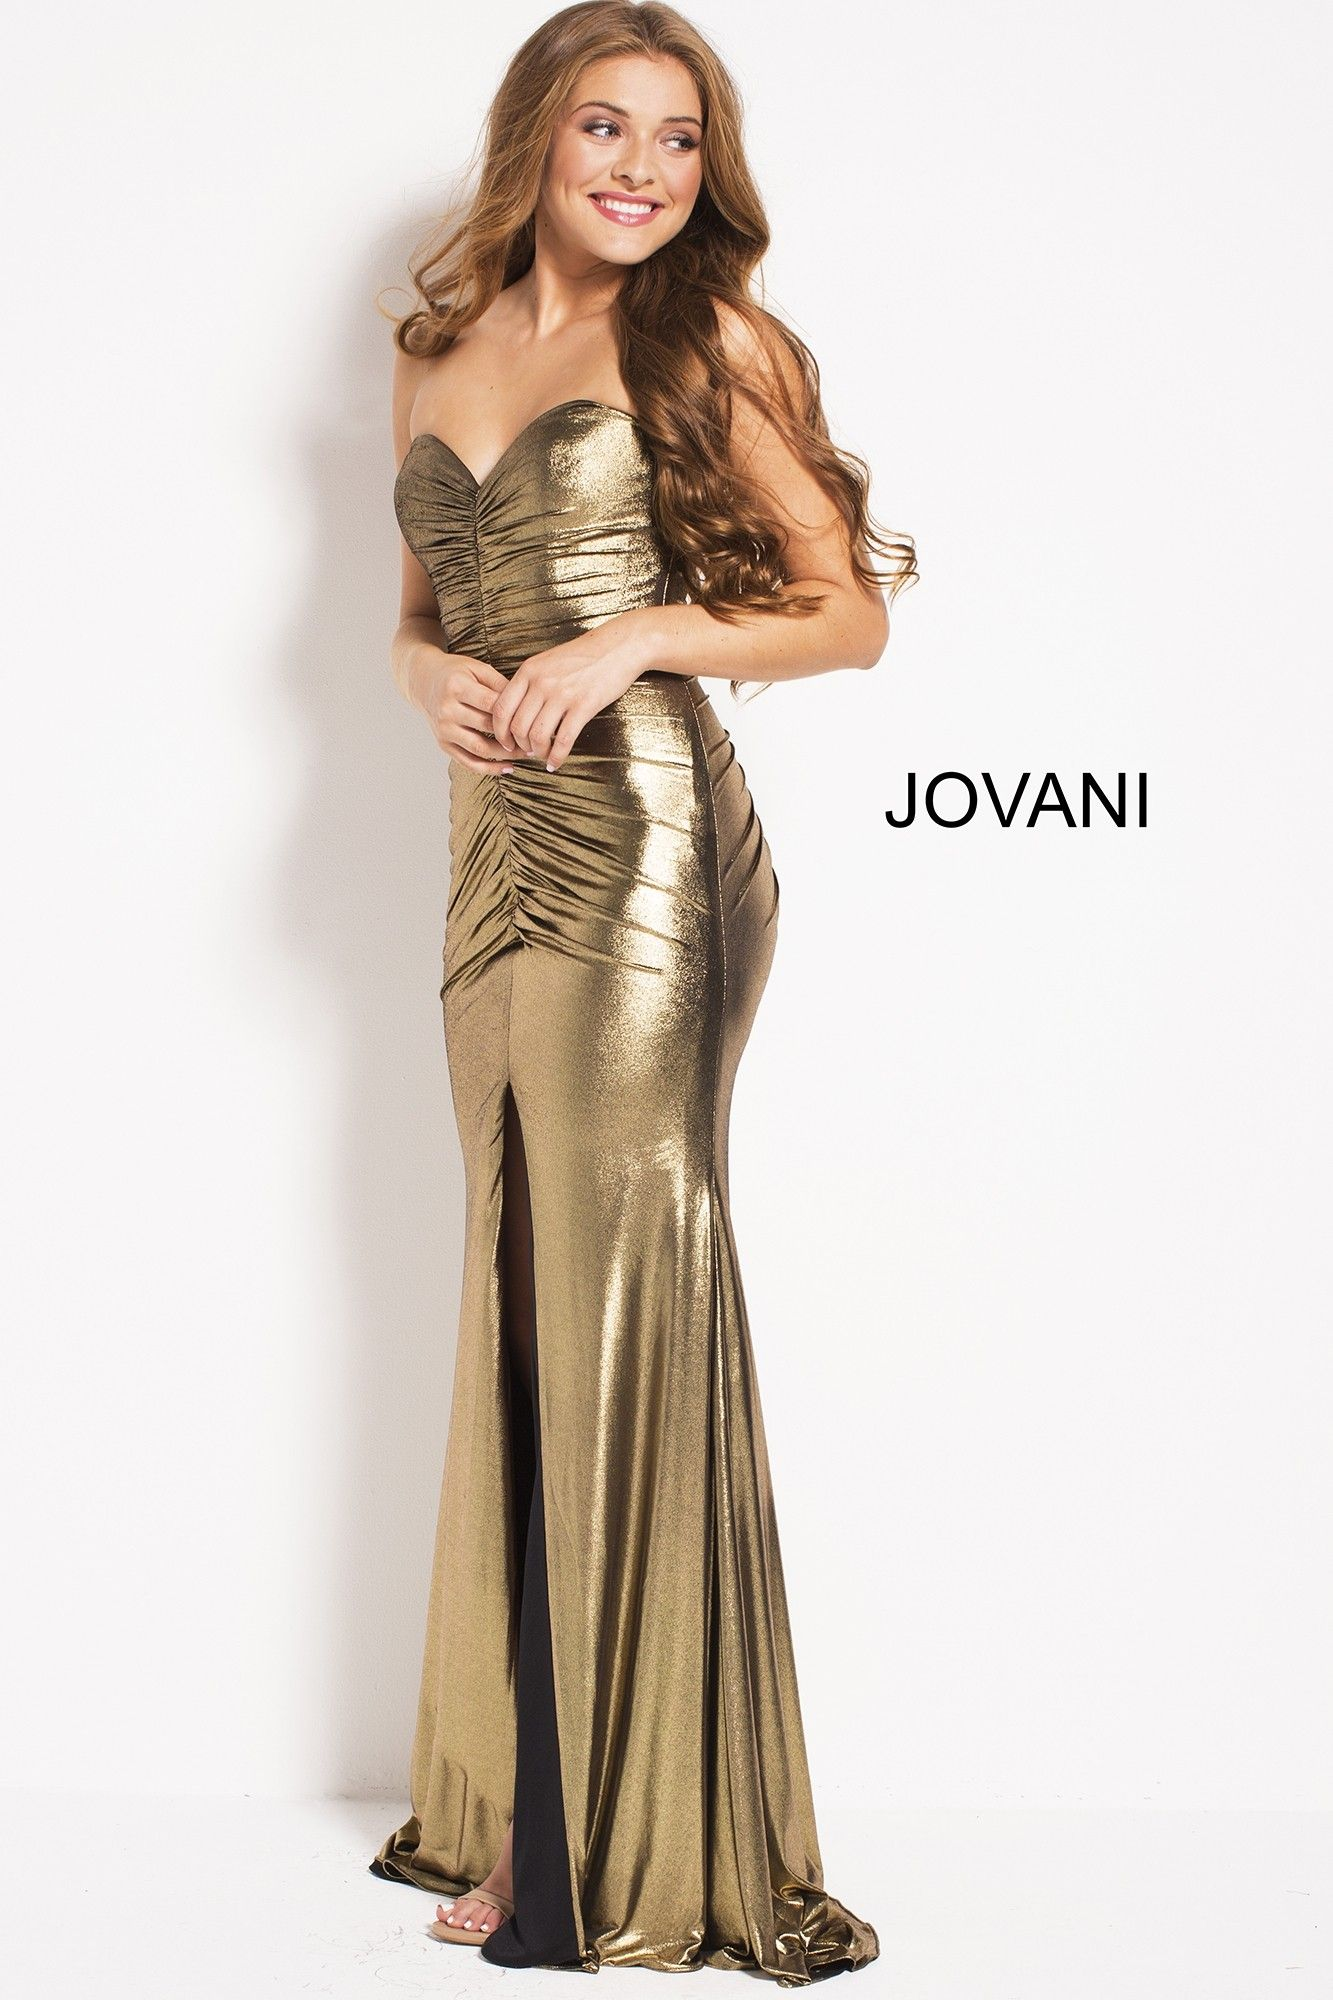 Jovani 51552 Ruched Metallic Gown with Slit   2018 Prom Dresses ...